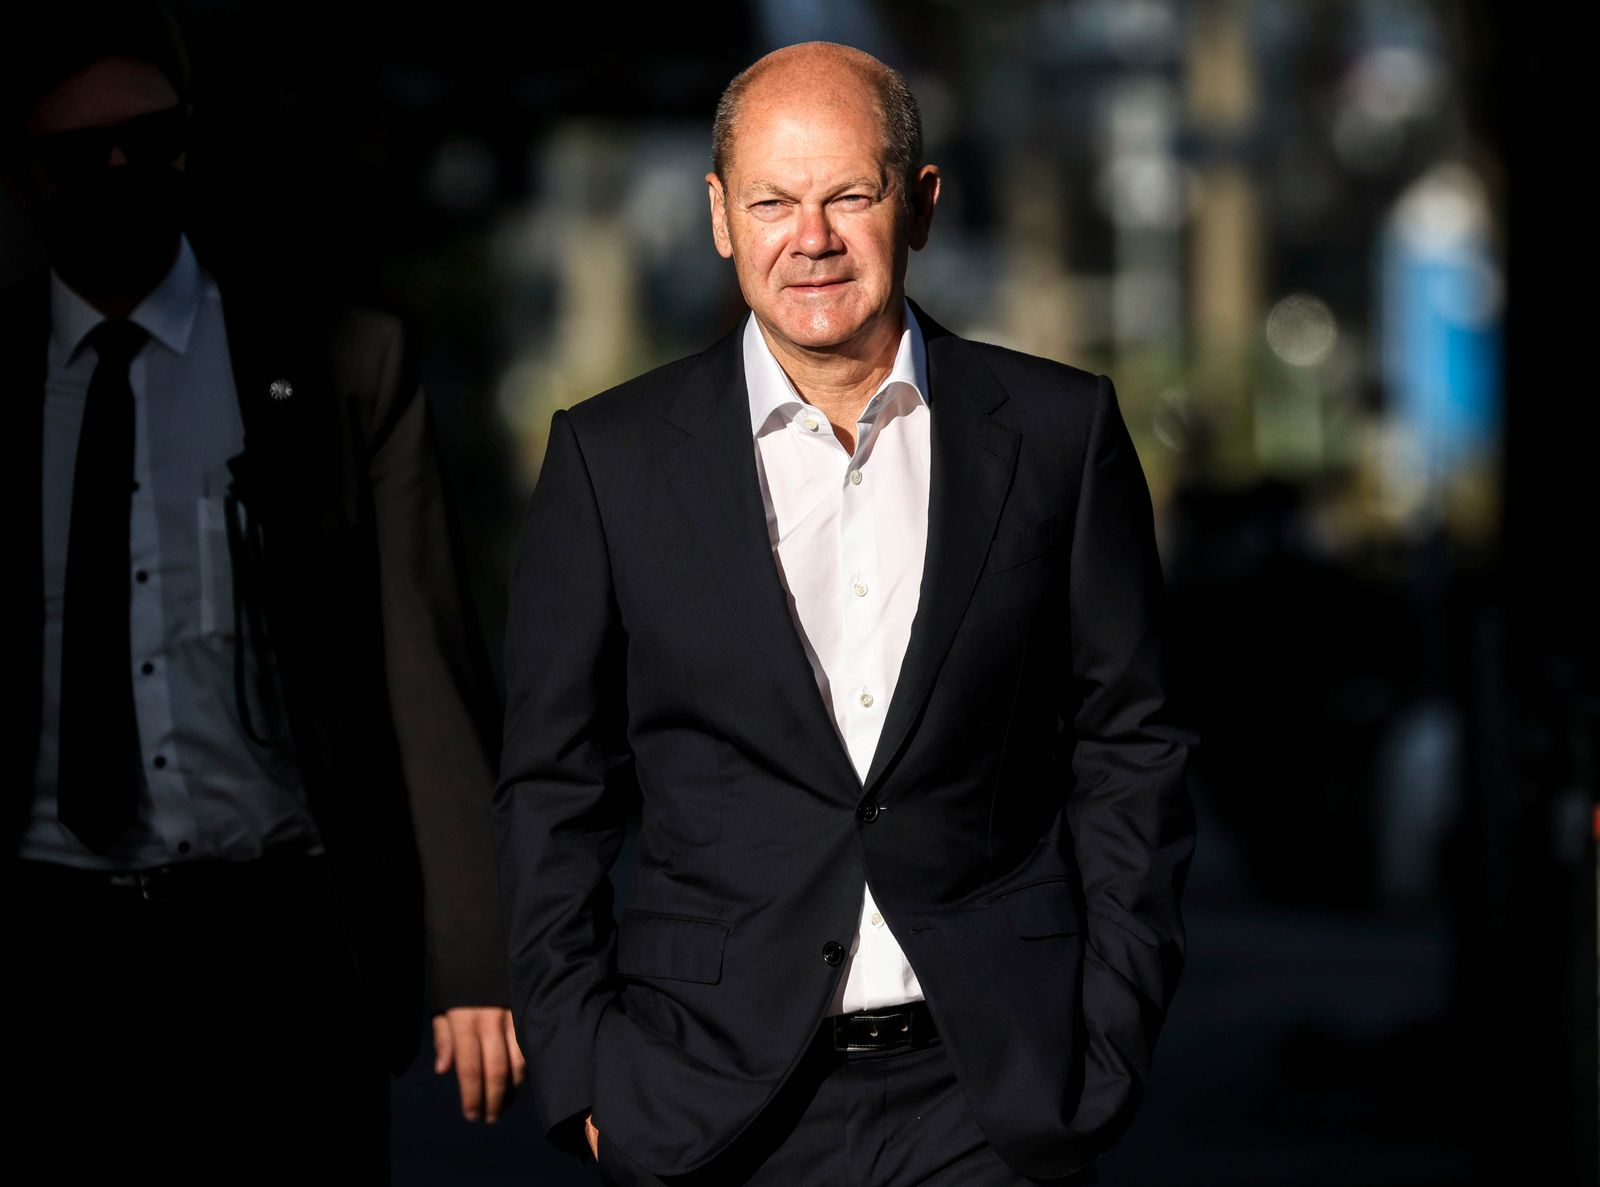 Olaf Scholz visits Ver.di workers at Amazon's Berlin logistics center